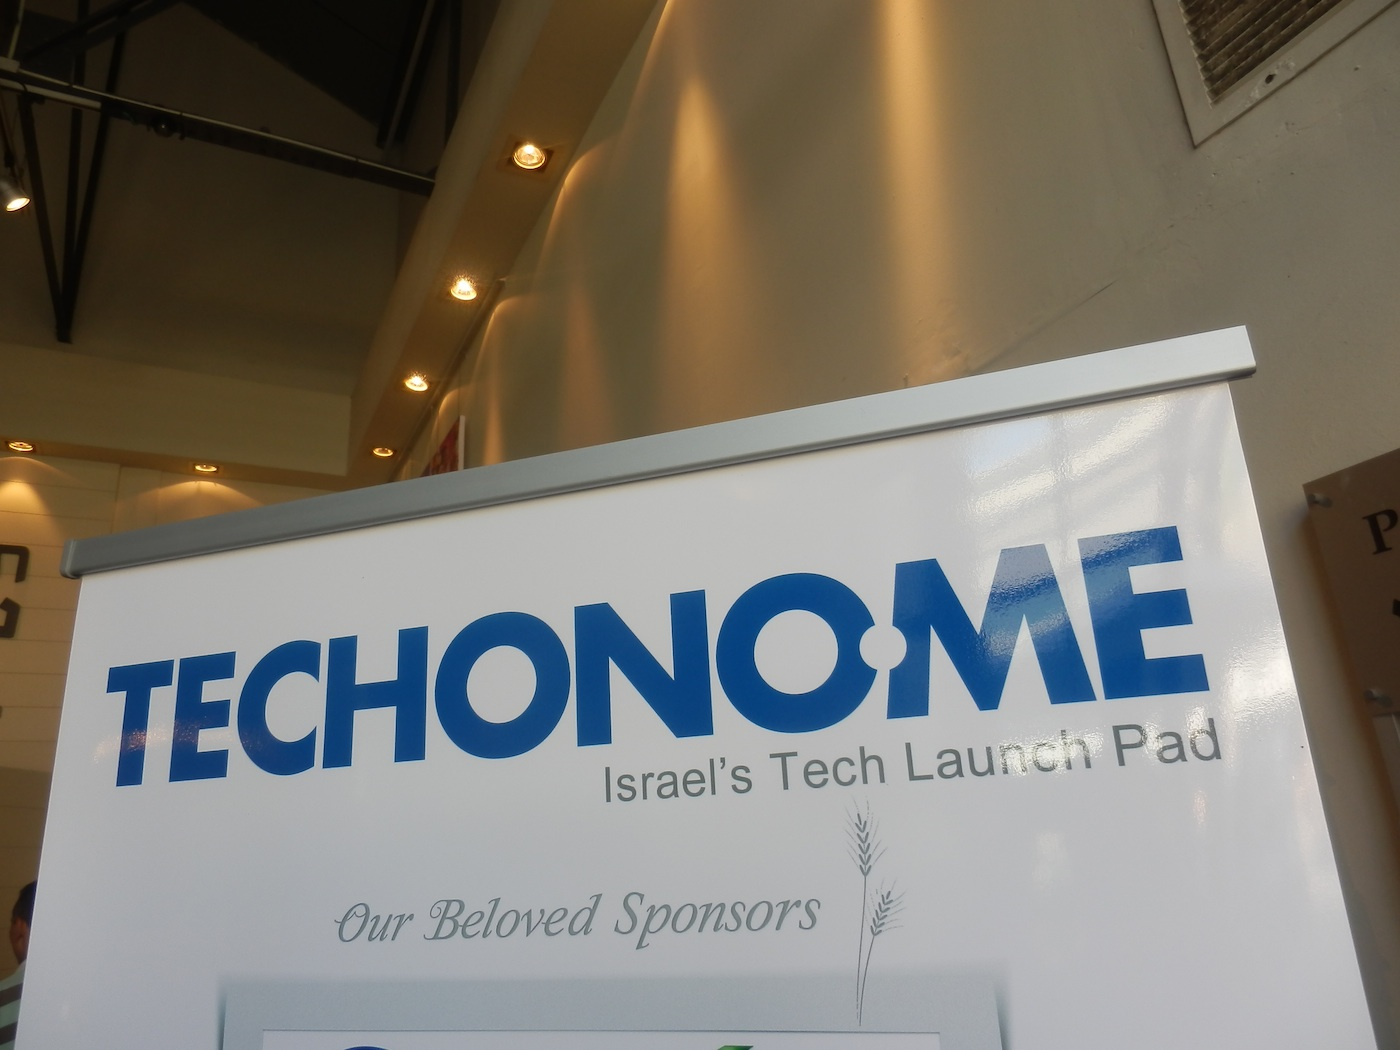 Viva Tel Aviv: Meet the 6 amazing startups launching at Techono.me today